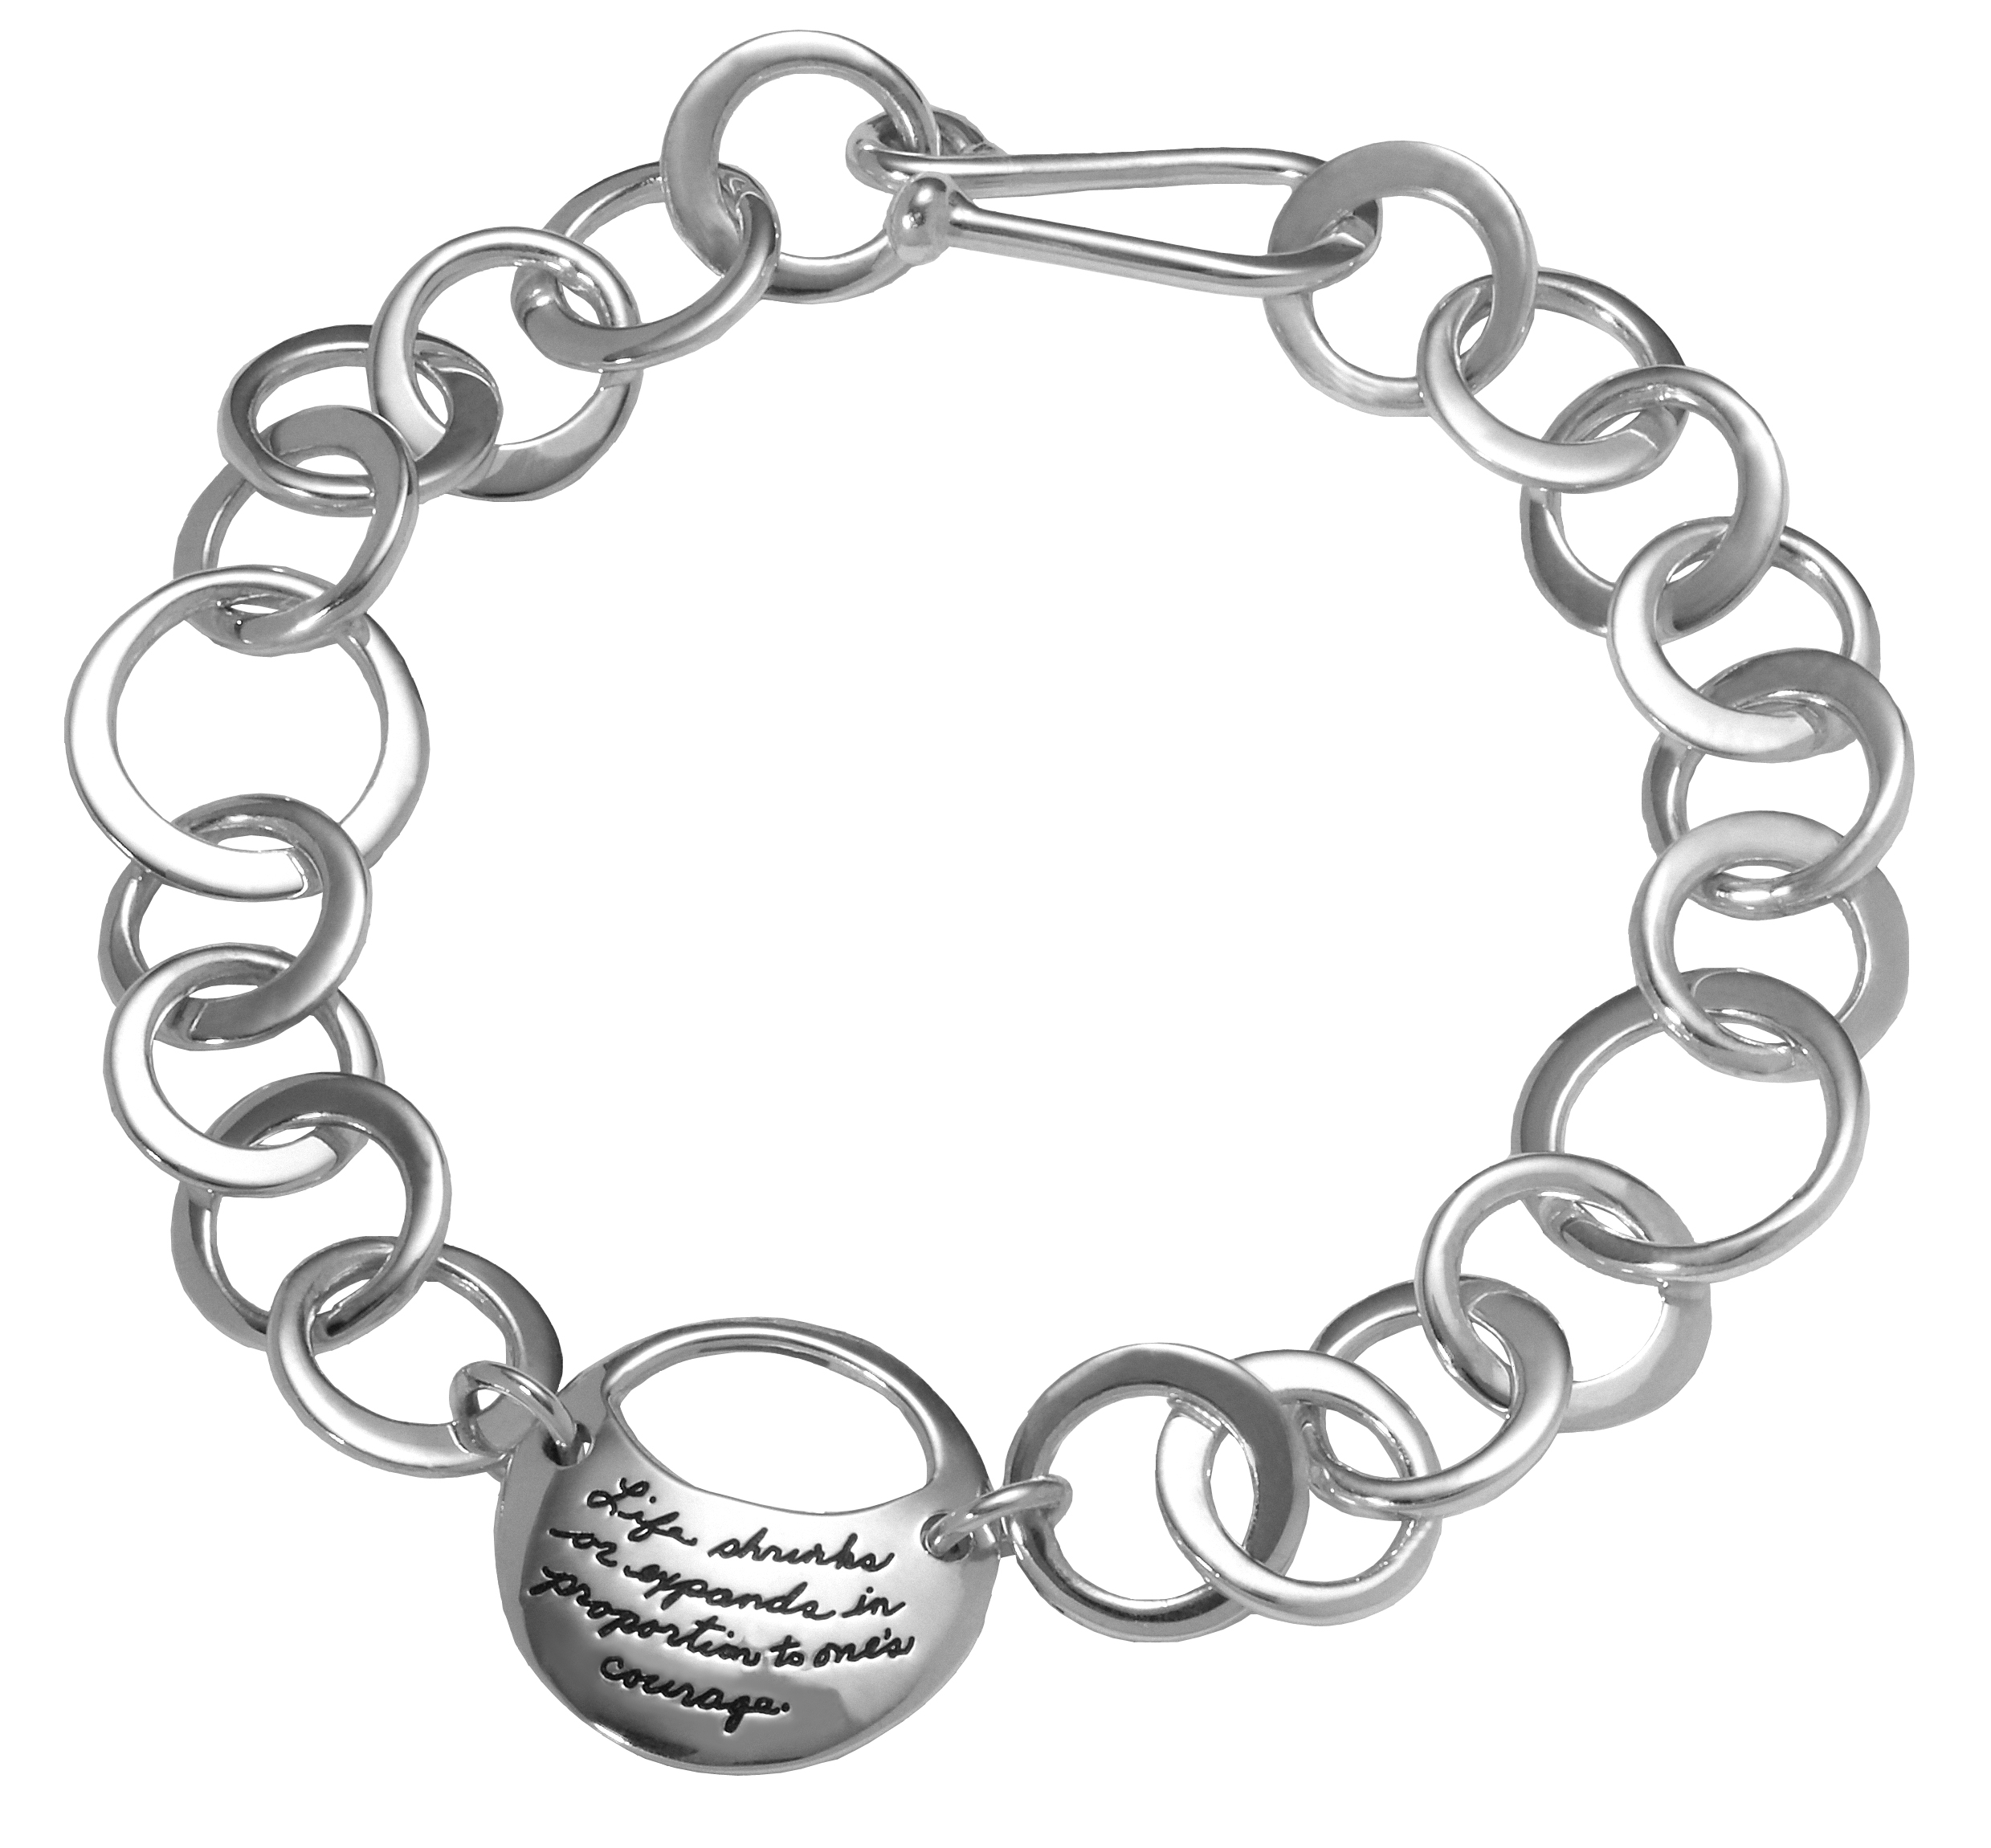 A Courageous Life sterling link bracelet with Anais Nin quotation on full moon and waxing moon cutout - Life shrinks or expands in proportion to o's couragene.